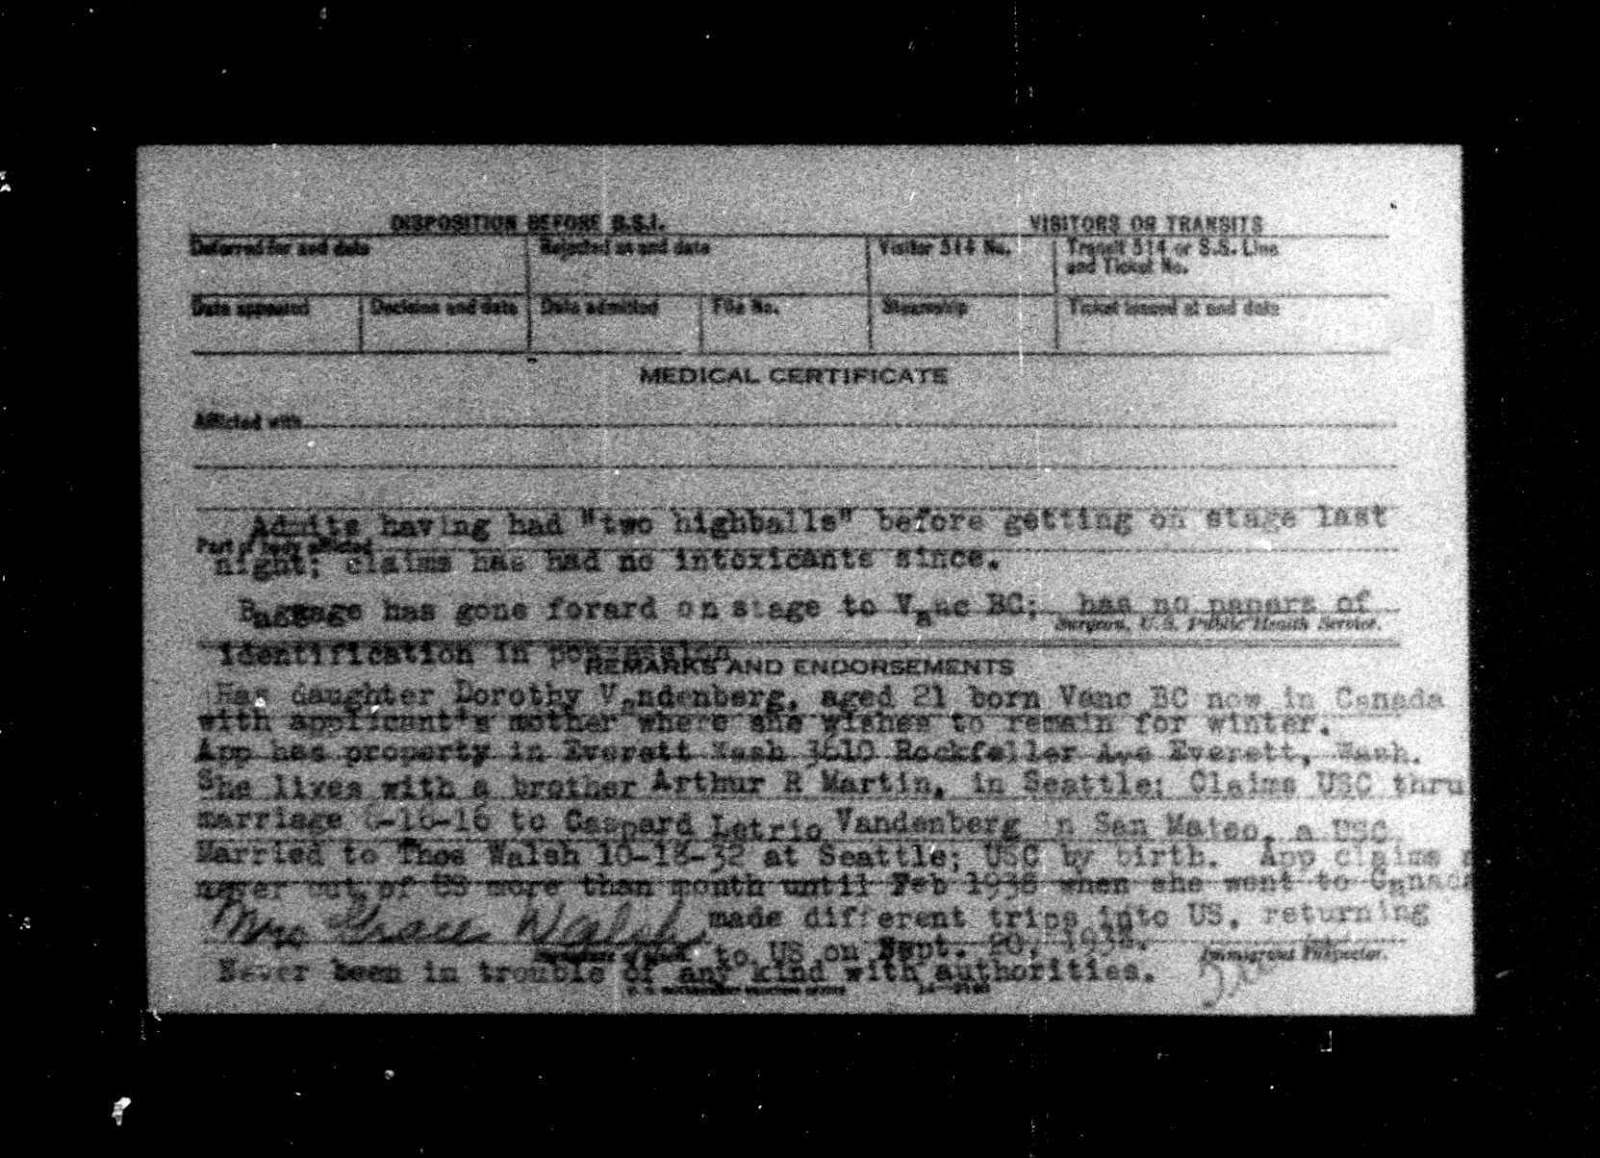 """Ancestry.com, """"Border Crossings: From Canada to U.S., 1895-1956,"""" database on-line, Ancestry.com (http://www.ancestry.com/ : accessed 3 Feb 2015), entry for Grace Olive Walsh, 23 Sep 1938, back of card; Original data: Records of the Immigration and Naturalization Service, RG 85. Washington, D.C.: National Archives and Records Administration."""